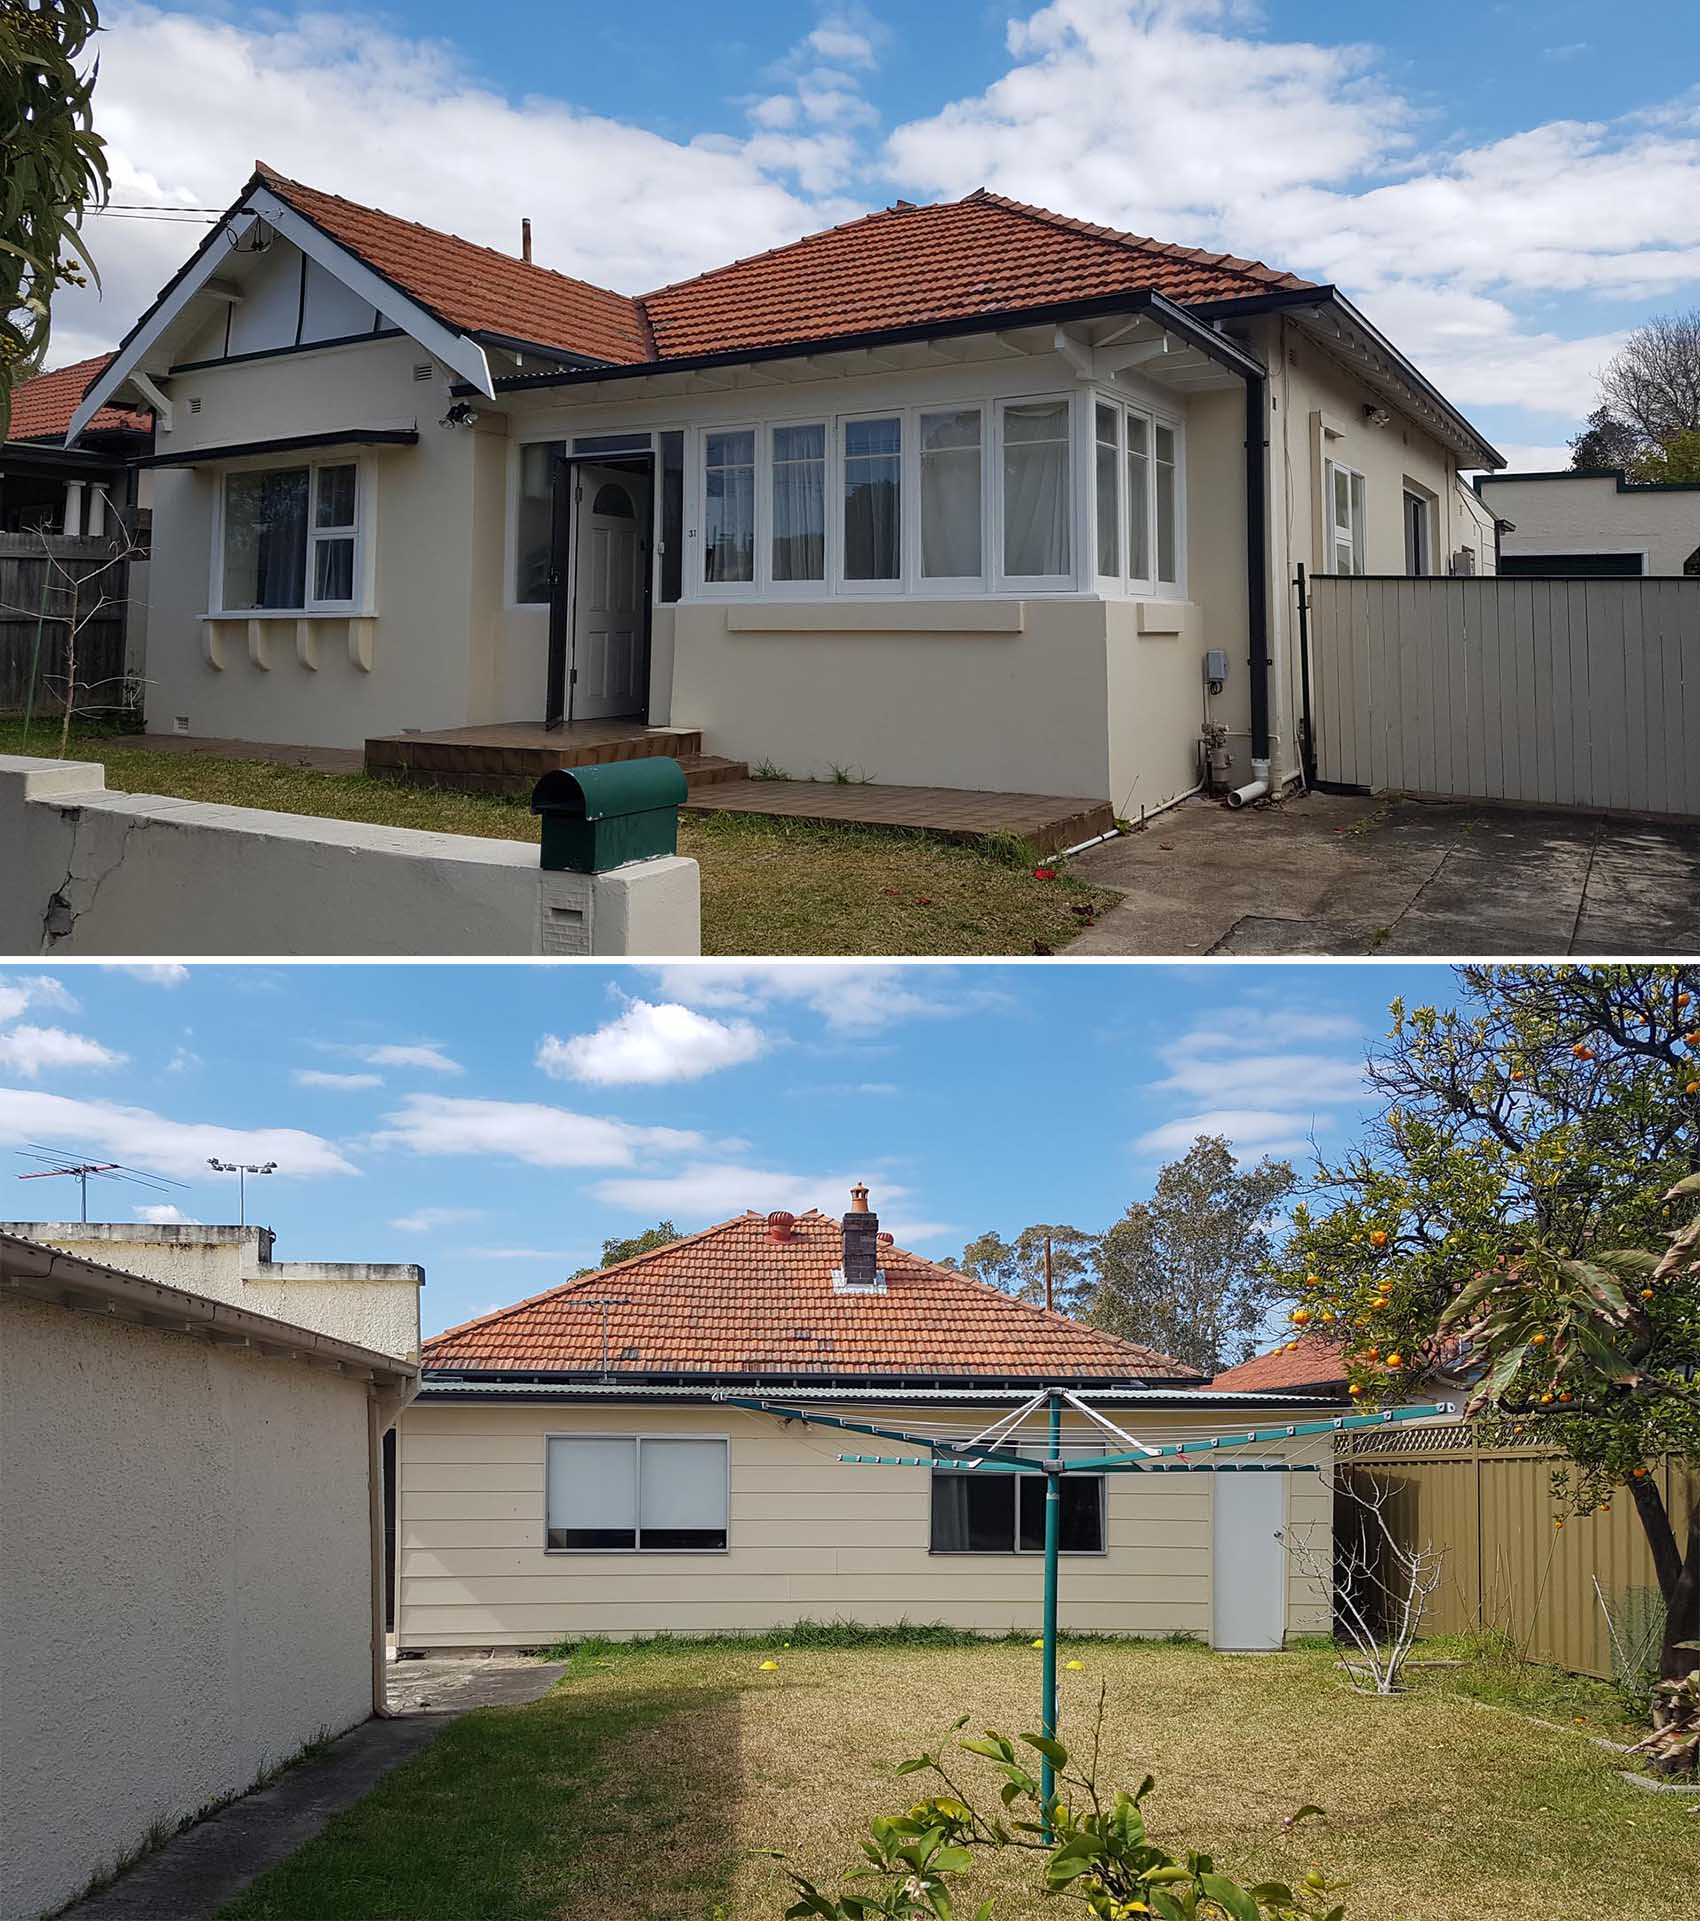 BEFORE PHOTO - A traditional federation home in Sydney, Australia.